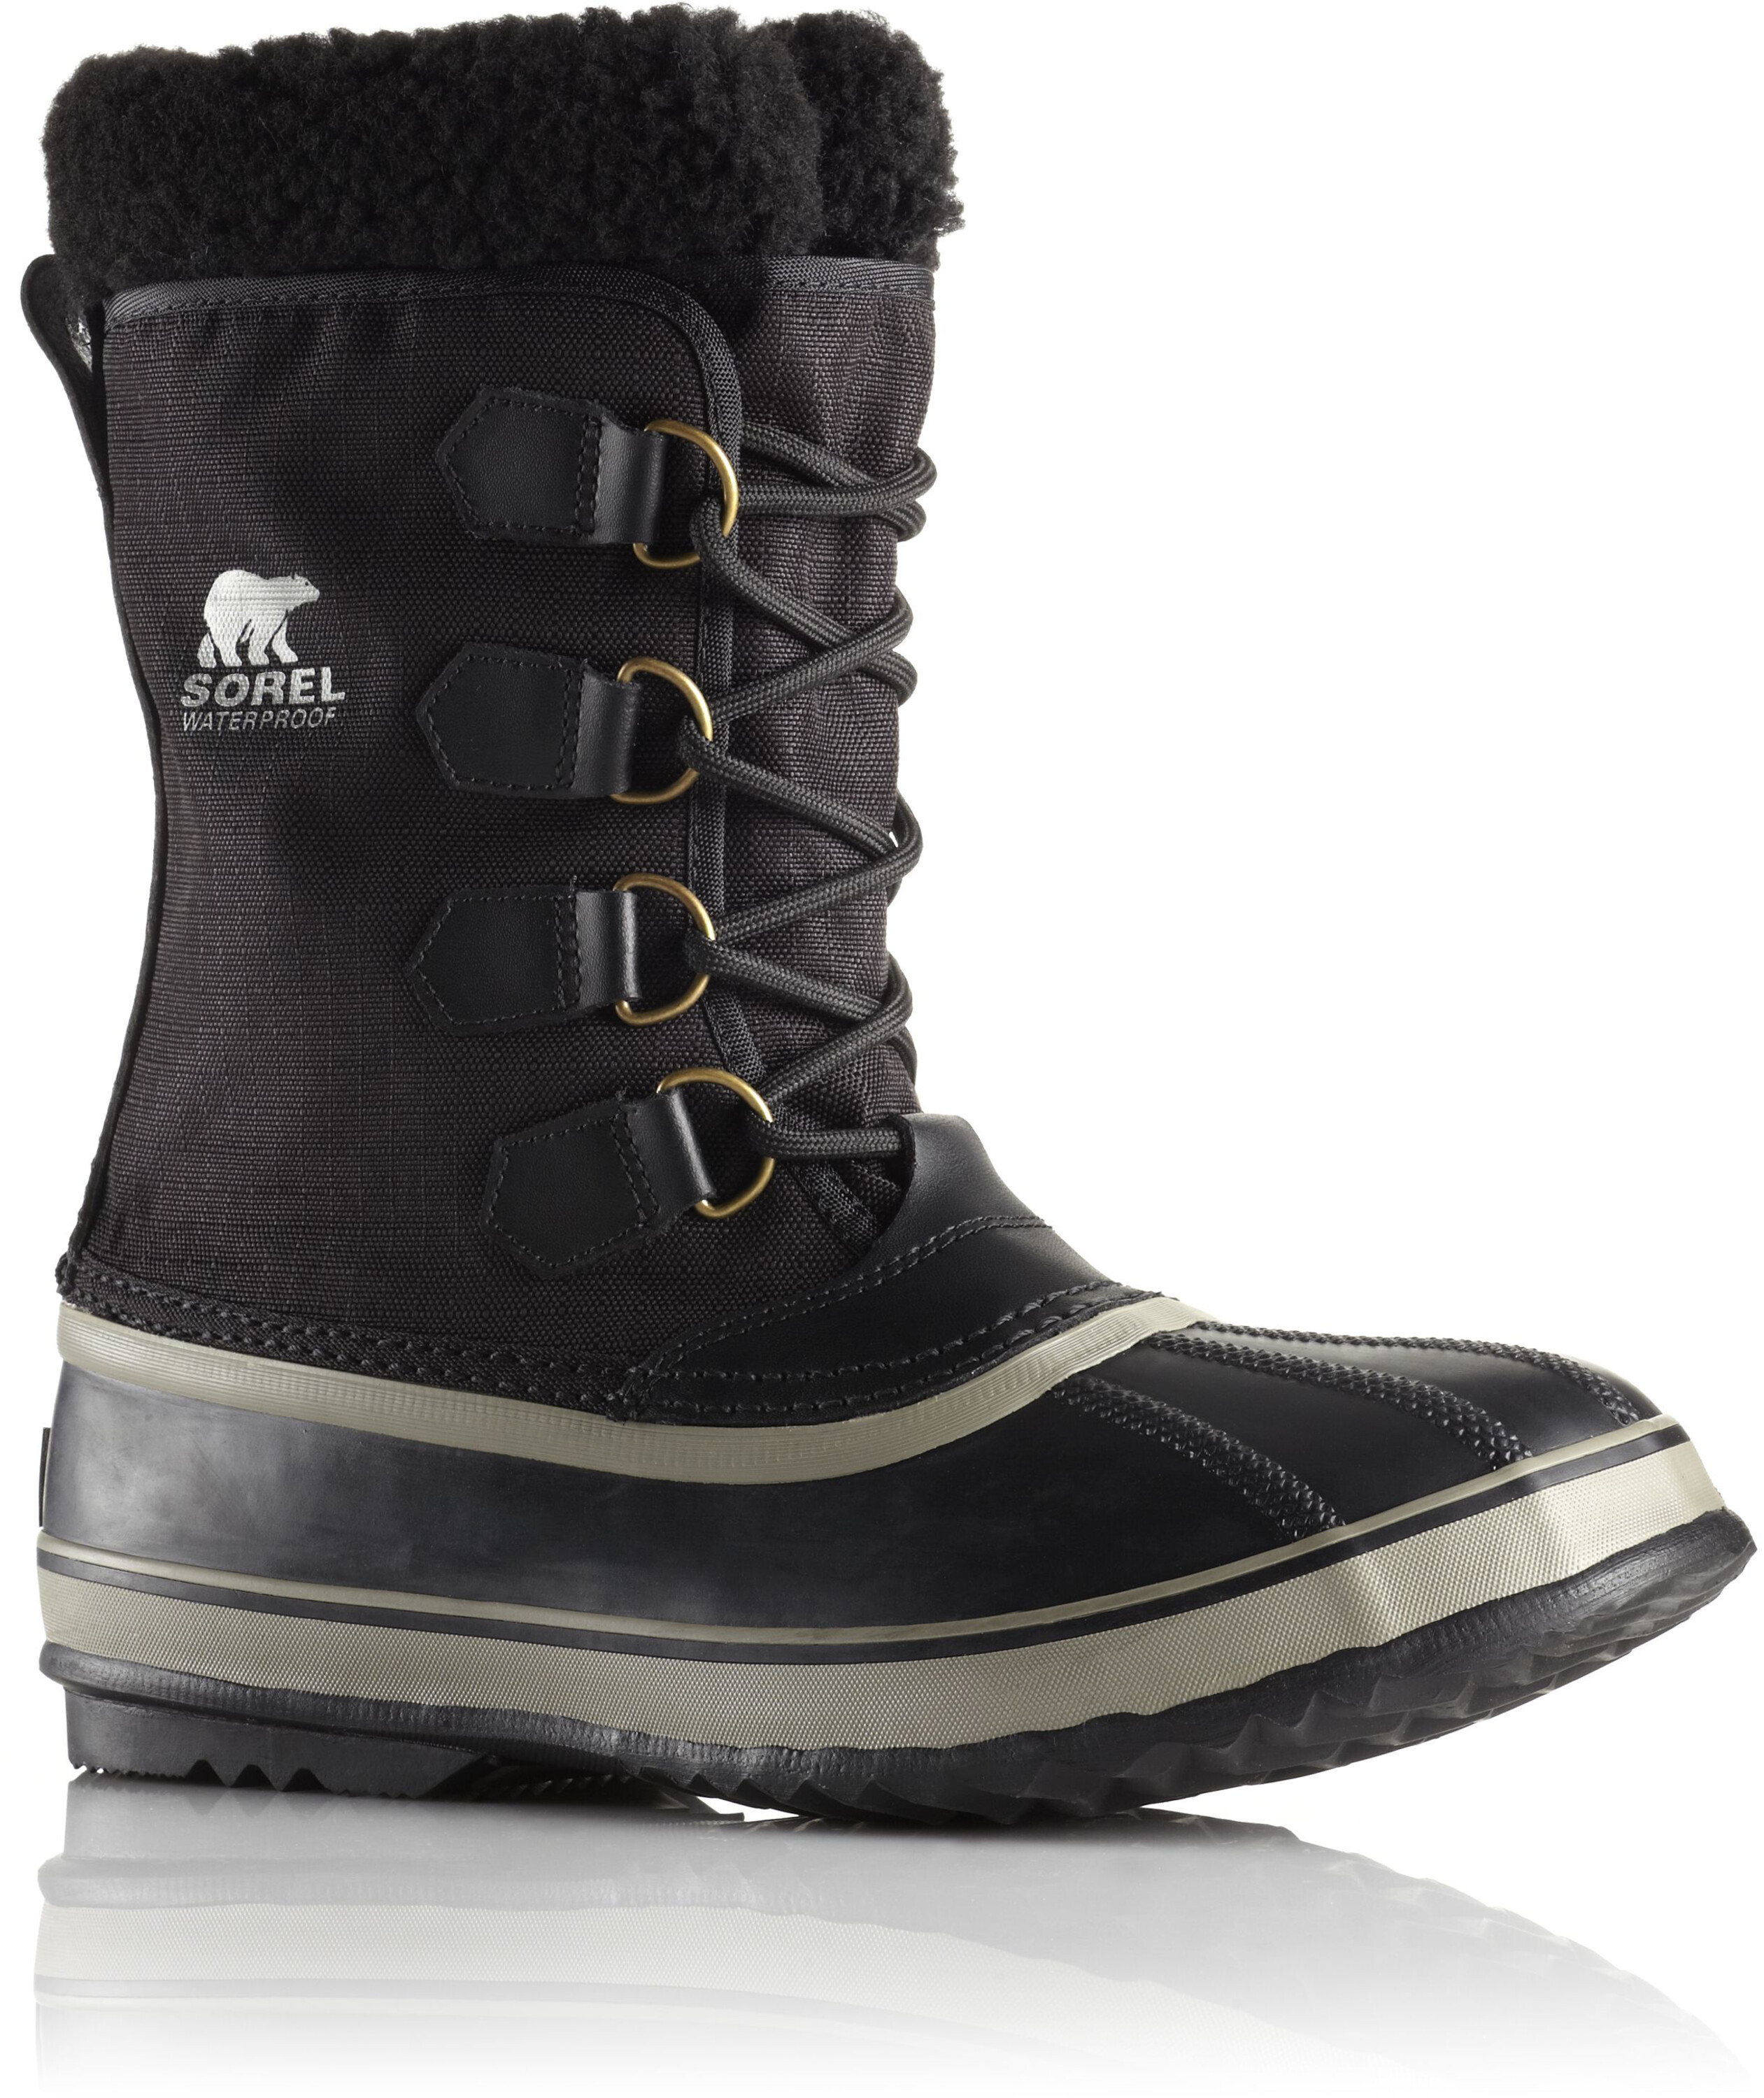 fb8dc6532544d3 Sorel 1964 Pack Nylon Stivali Uomo, black/tusk su Addnature